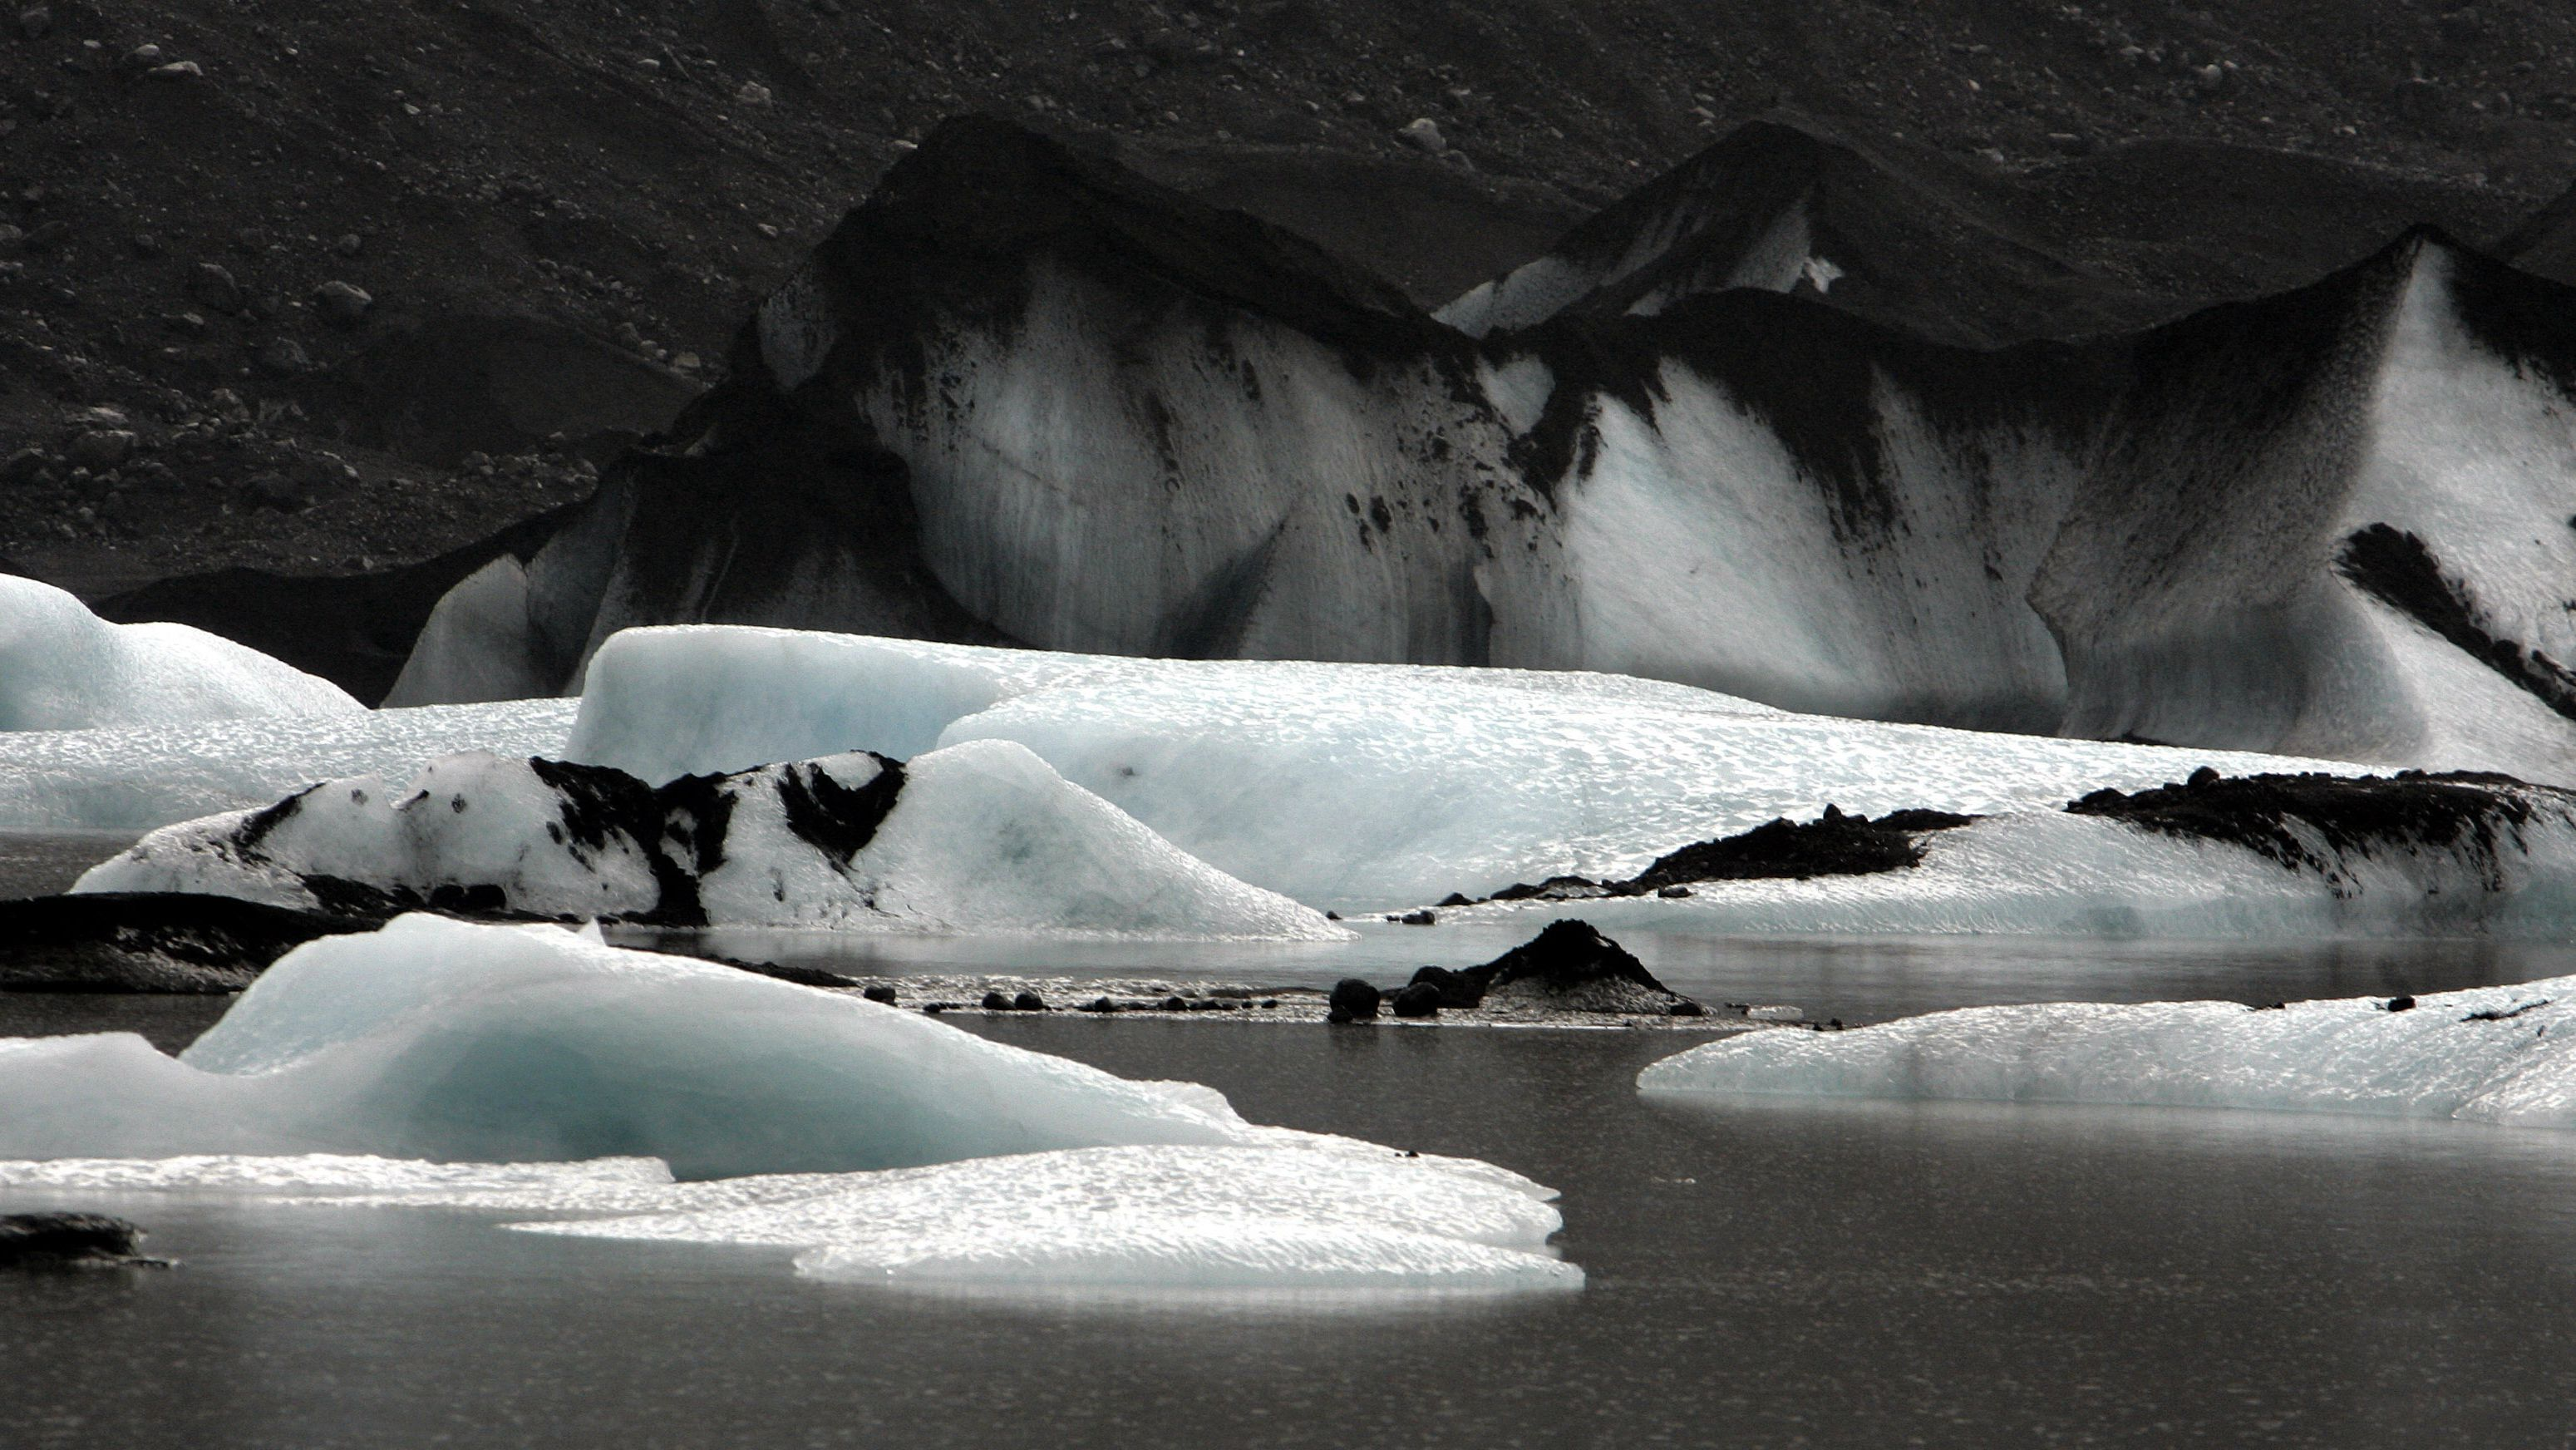 The tongue of a glacier melts into a glacial lagoon in the Porsmork nature reserve, Iceland, Thursday Feb. 23, 2006. (AP Photo/Kirsty Wigglesworth